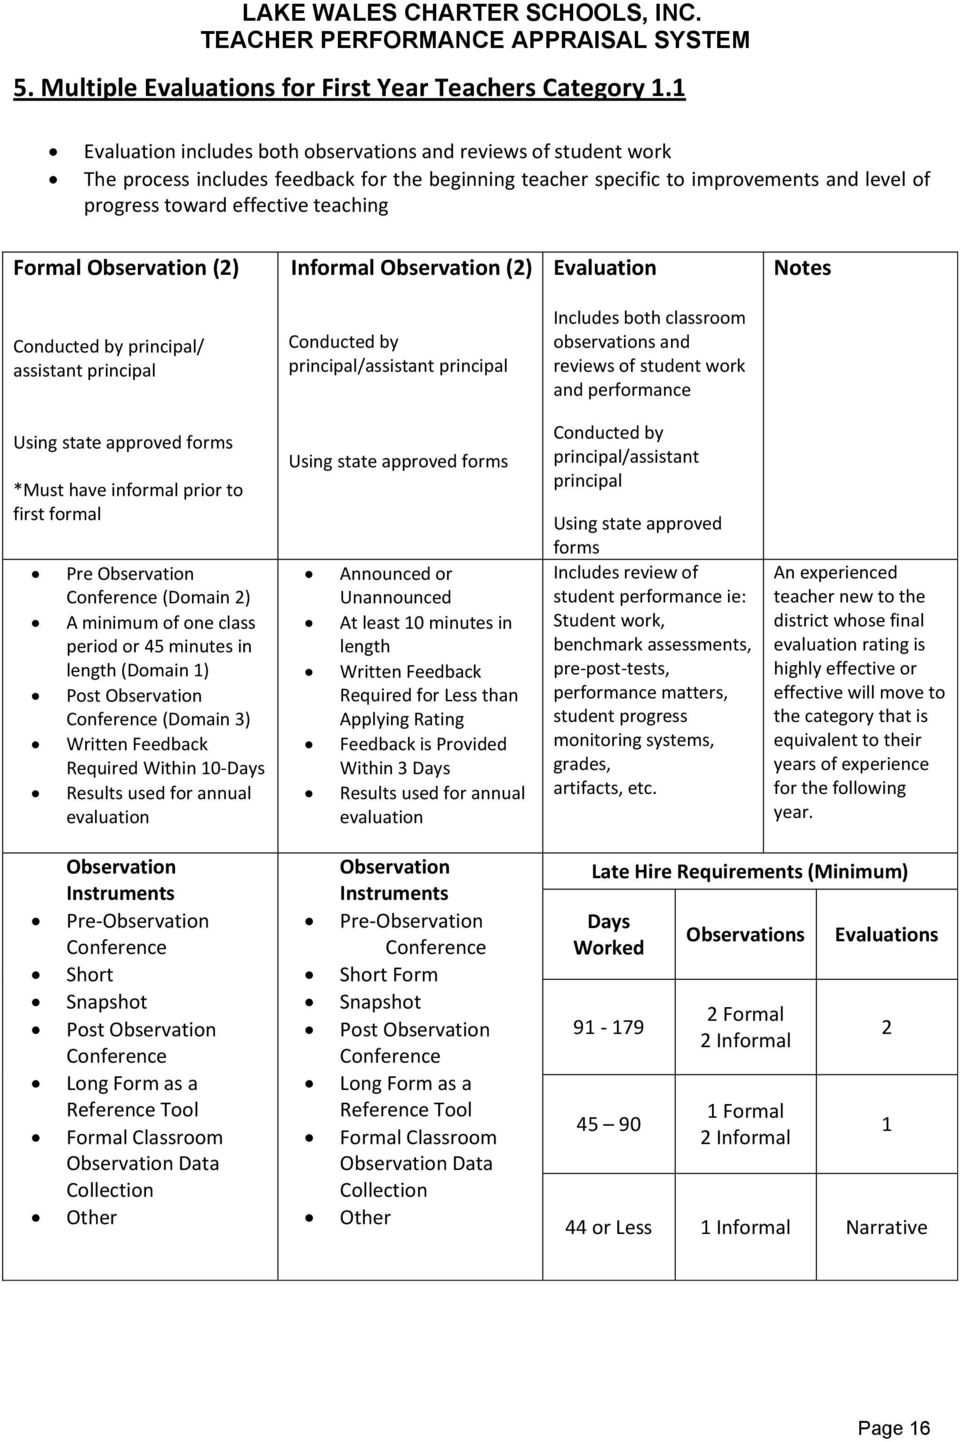 Formal Observation (2) Informal Observation (2) Evaluation Notes Conducted by principal/ assistant principal Conducted by principal/assistant principal Includes both classroom observations and